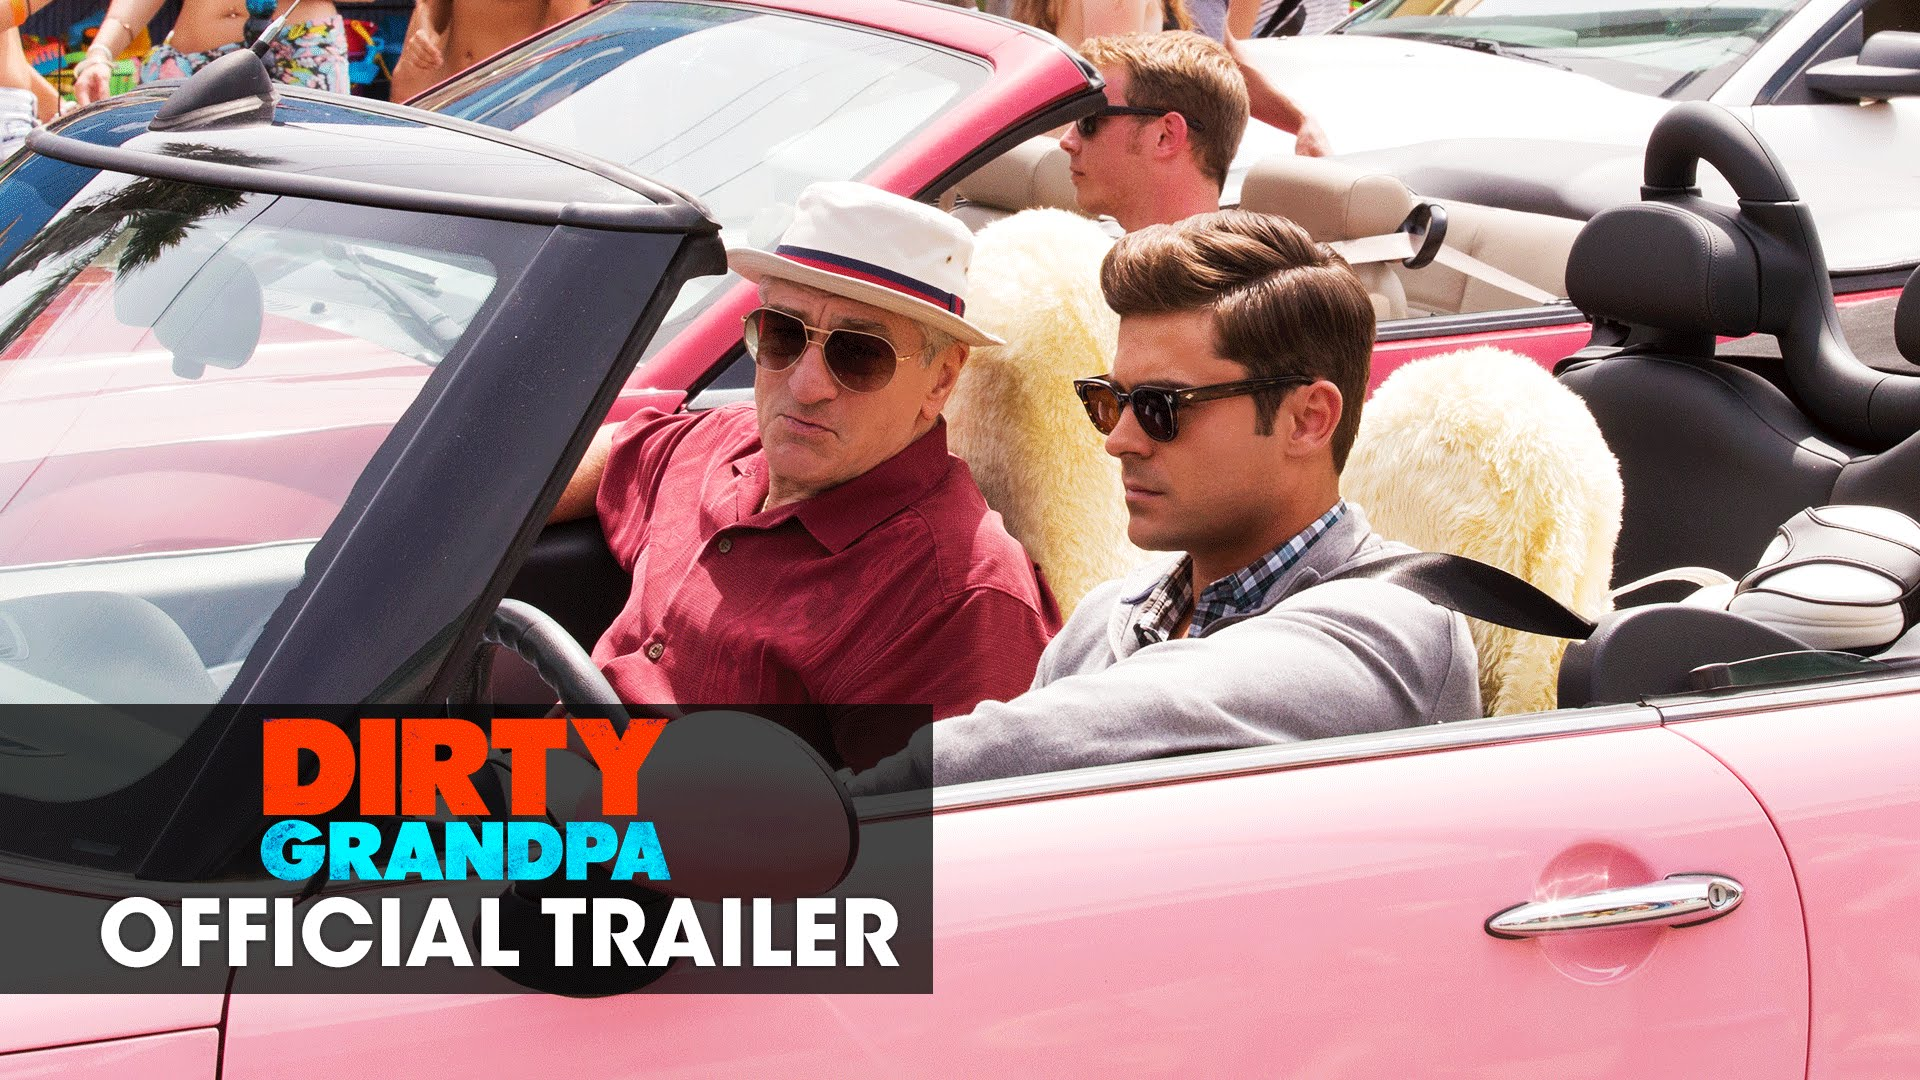 Dirty Grandpa (2016 Movie – Zac Efron, Robert De Niro) – Official Red Band Trailer